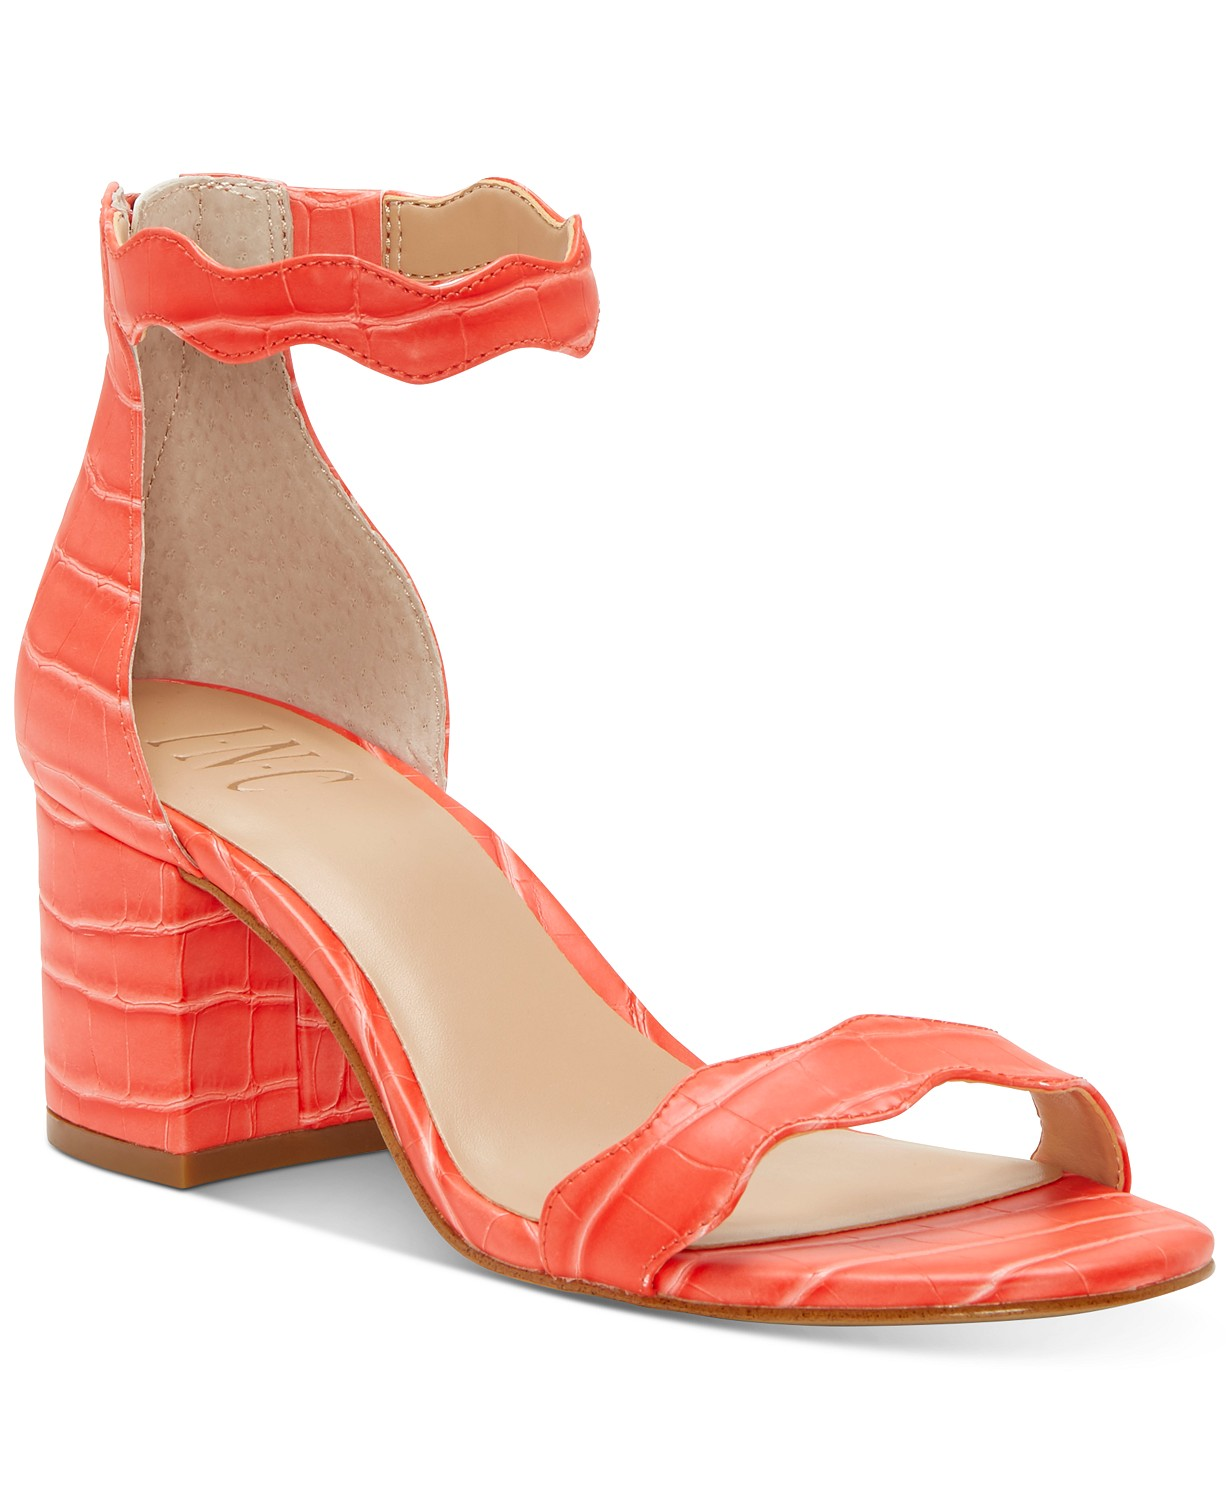 (81% OFF Deal) INC Women's Hadwin Scallop Two-Piece Sandals $14.96